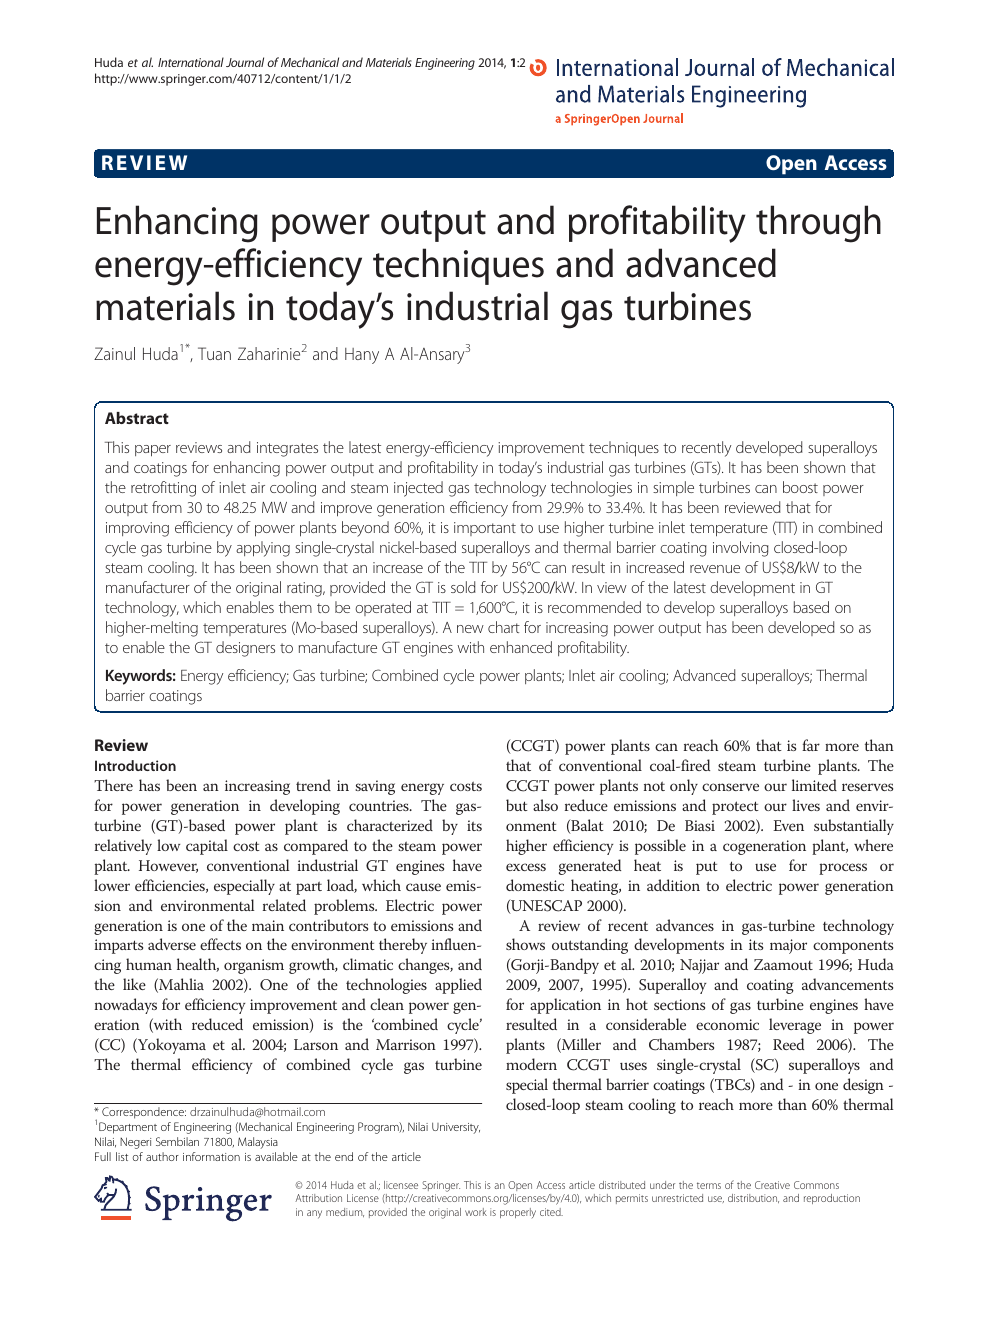 Enhancing power output and profitability through energy